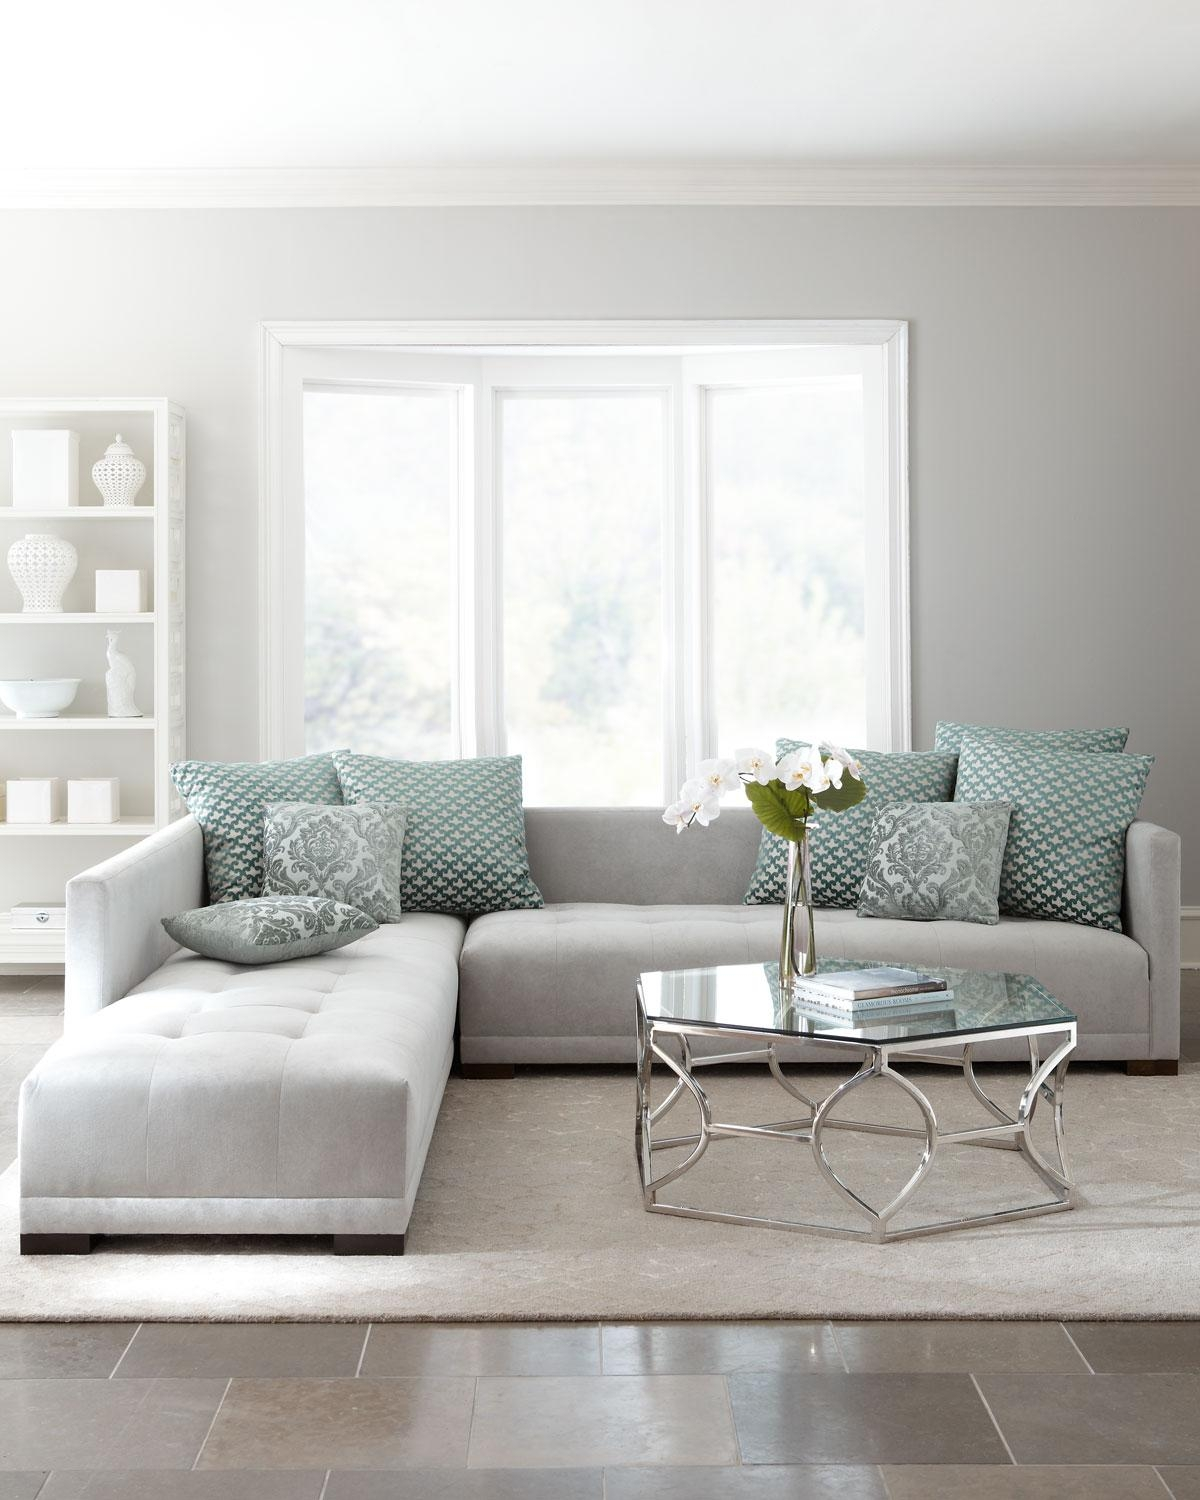 Sofa: Small Leather Sectional | West Elm Sectional | Tufted For West Elm Sectionals (Image 17 of 20)